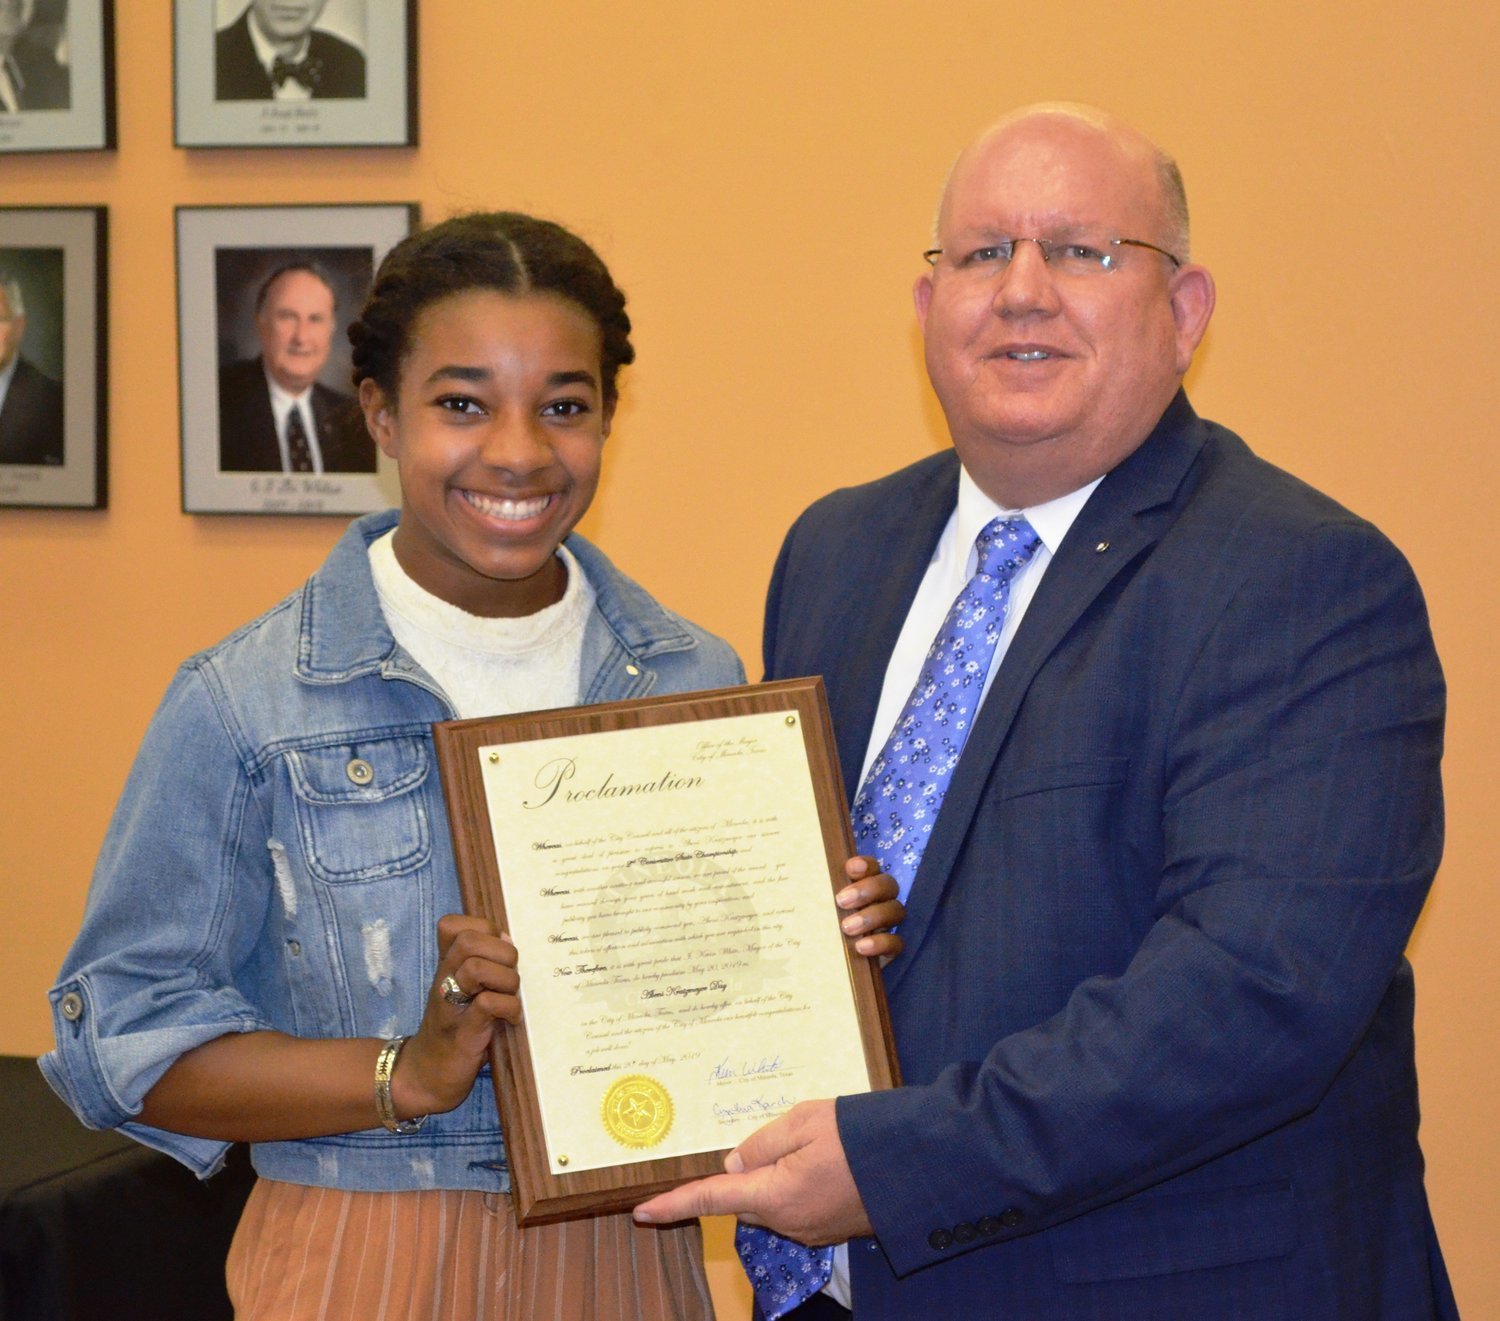 Mineola Mayor Kevin White presents a proclamation to Mineola High School's Abeni Kratzmeyer at Monday's Mineola City Council meeting in recognition of her second class 3A state pole vaulting title. White proclaimed Monday, May 20 as Abeni Kratzmeyer Day in Mineola.